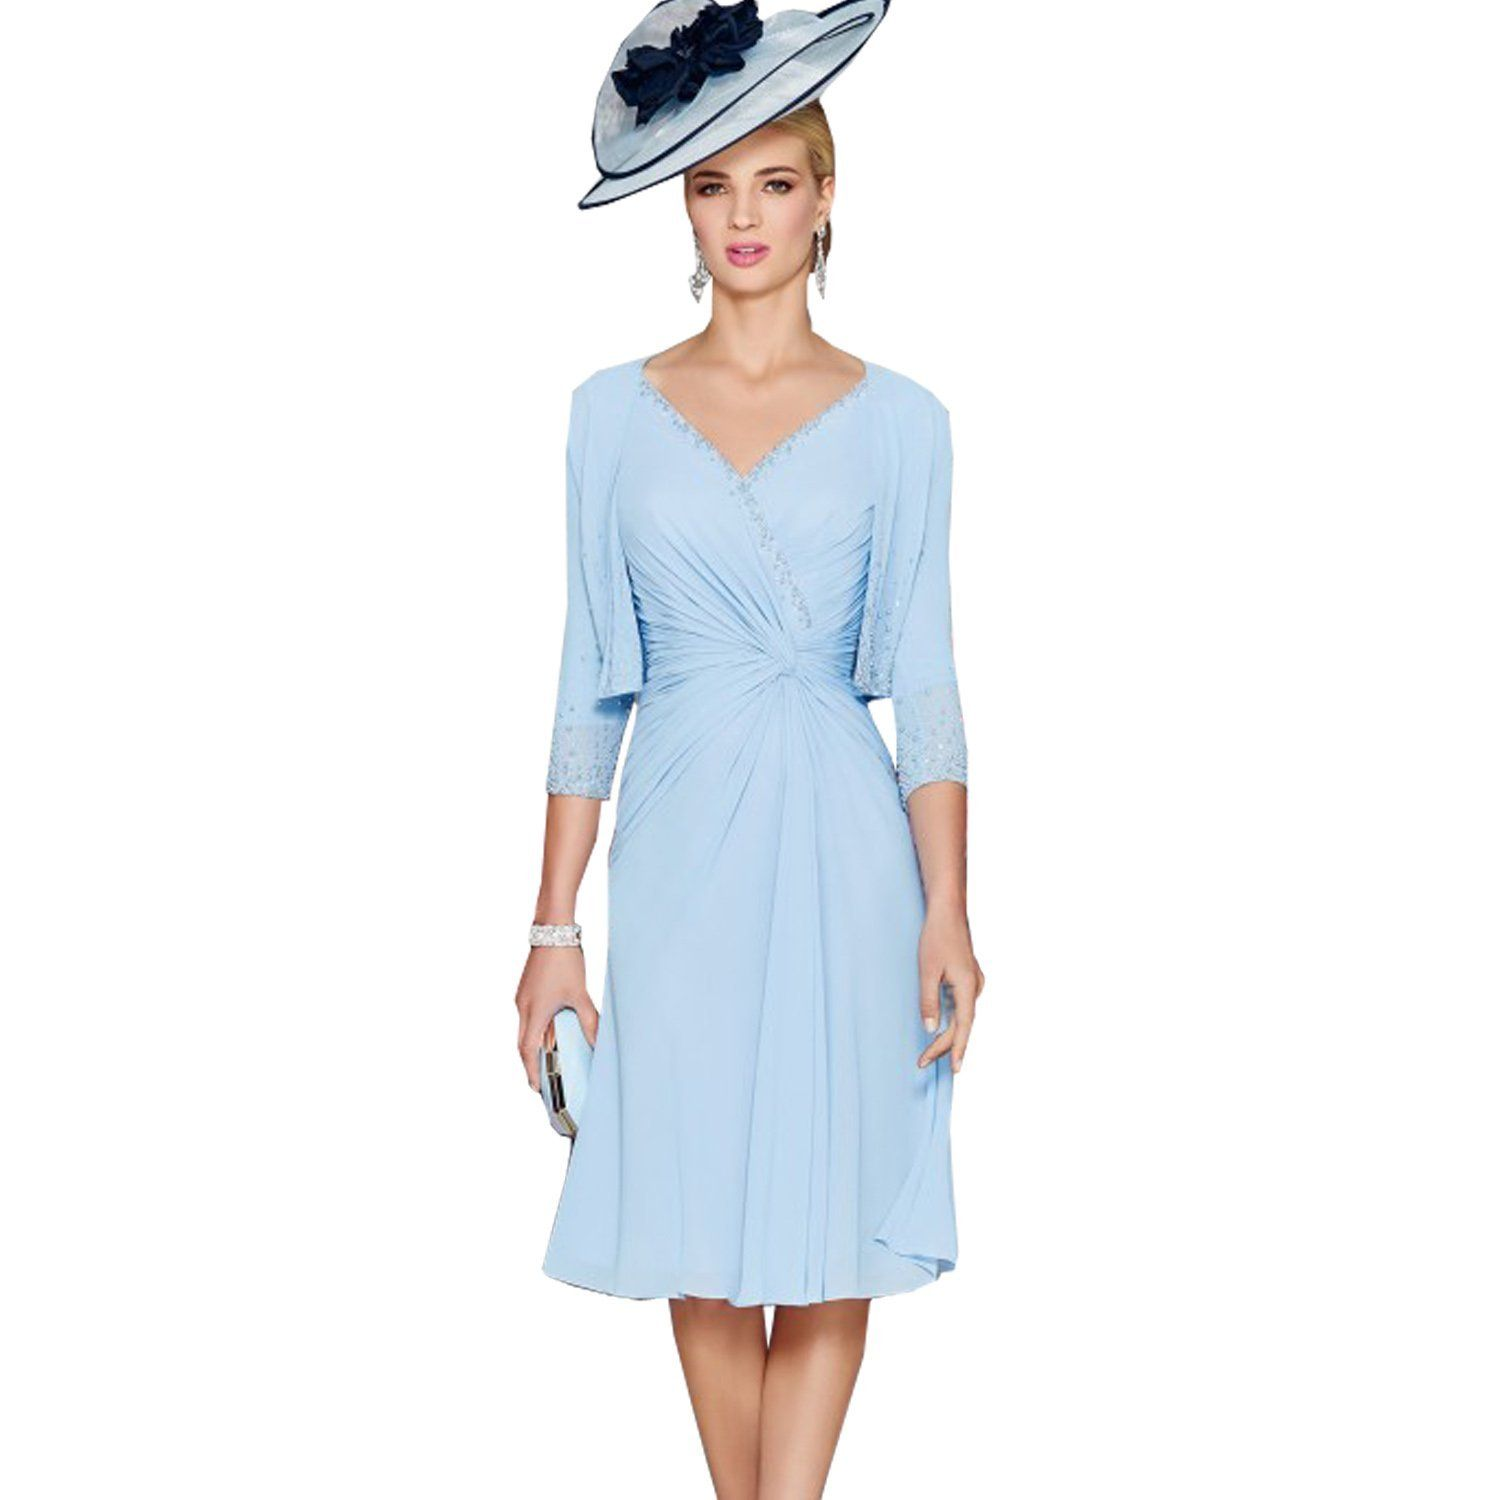 Fenghuavip graceful vneck mid long light blue bridal mother dresses